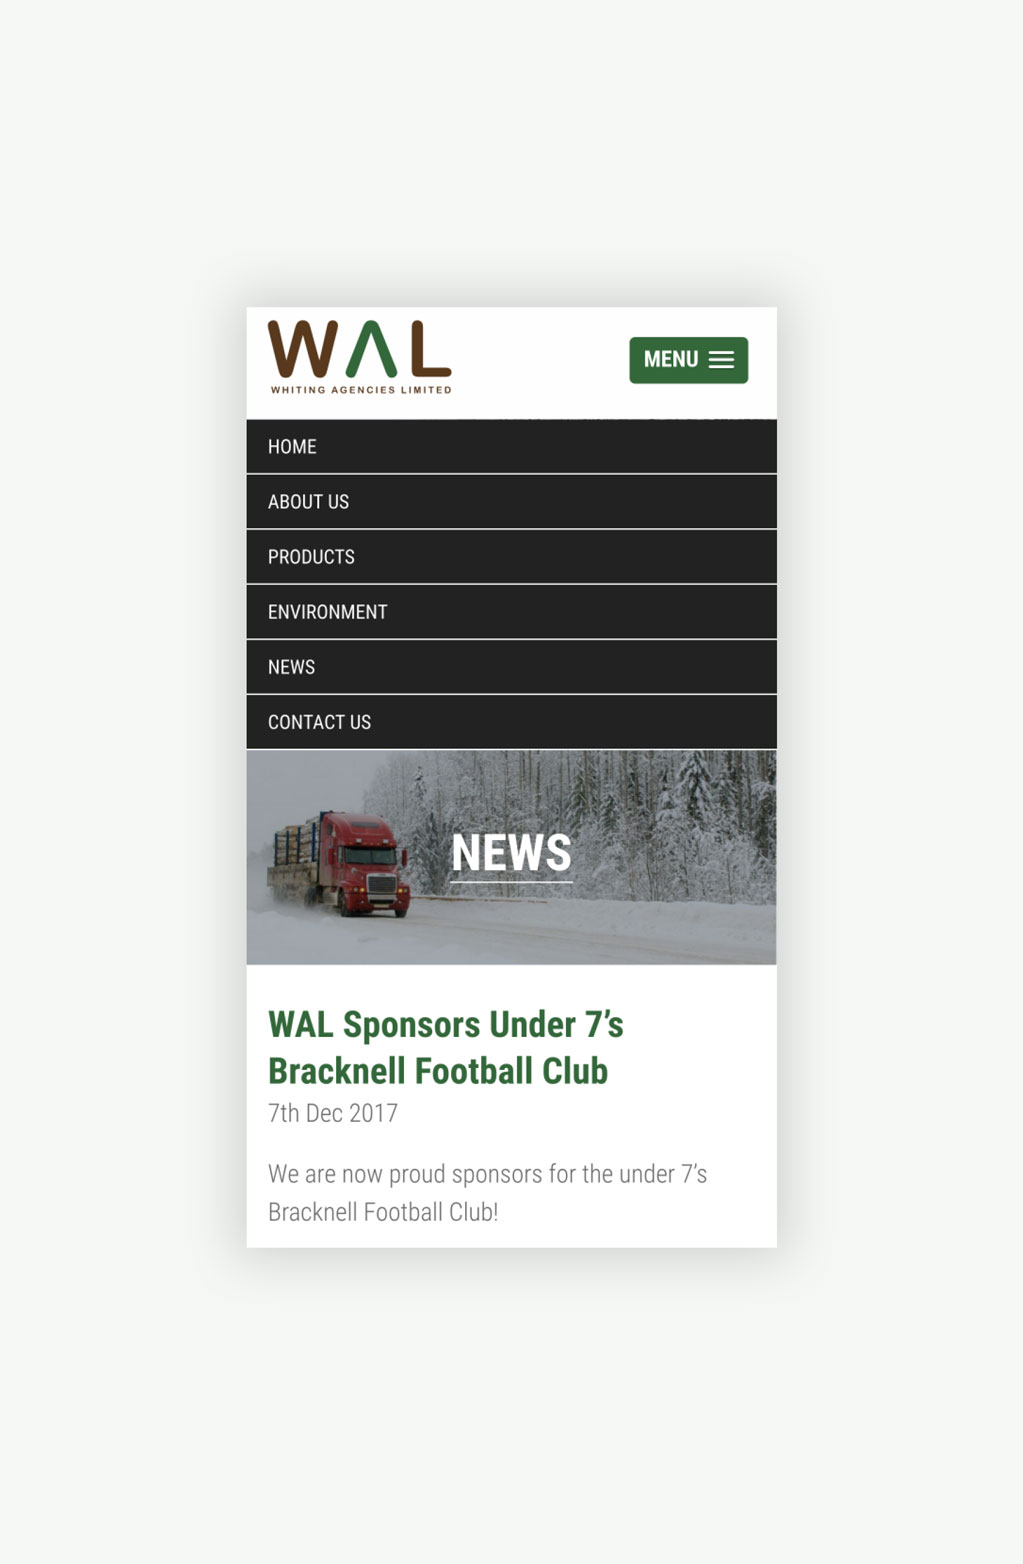 Whiting Agencies Limited News Page